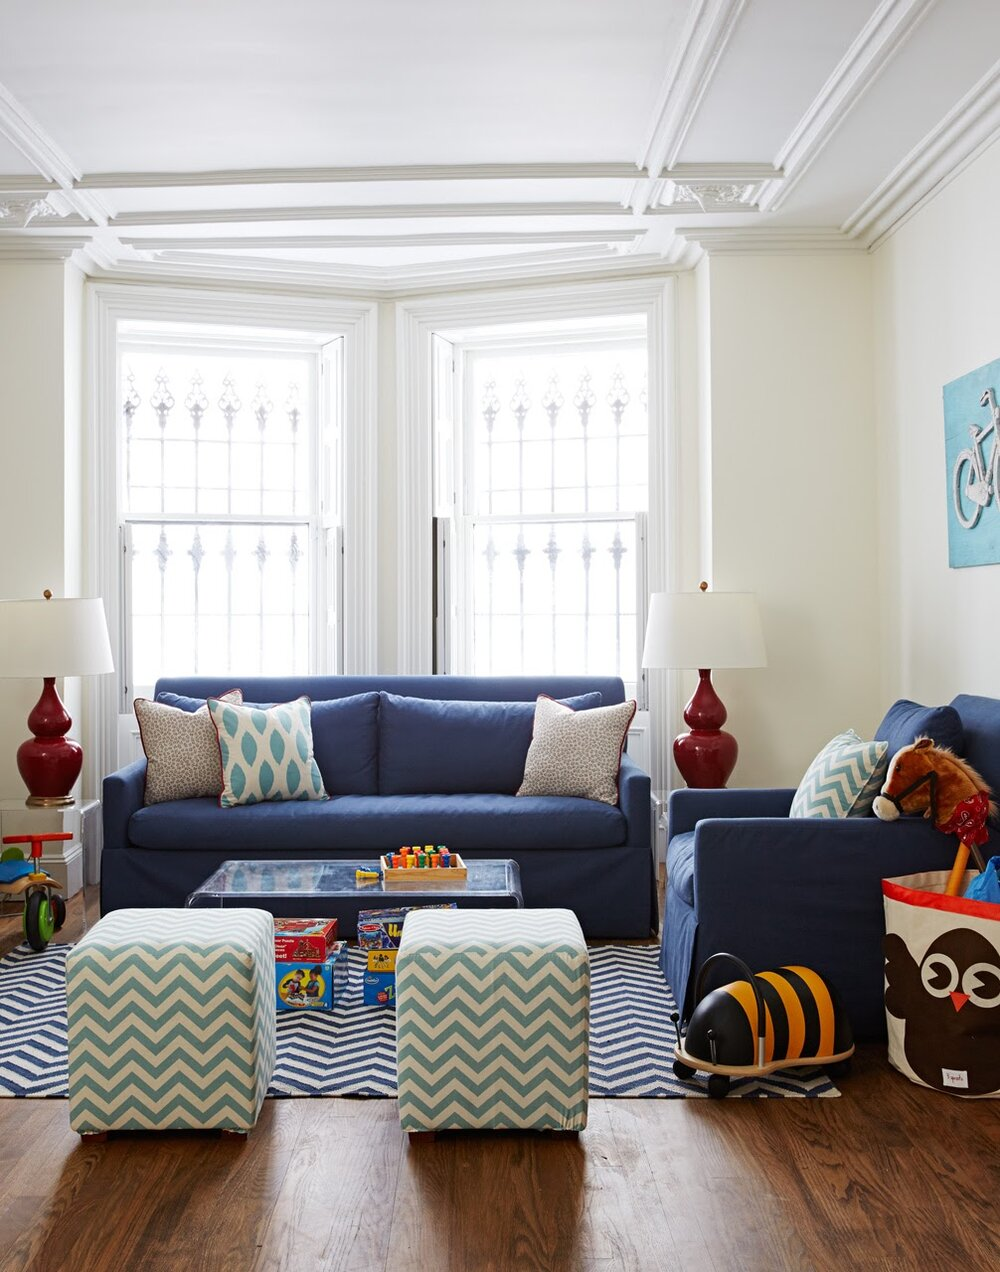 Funky patterns and colorful details take this cozy family room to the next level.